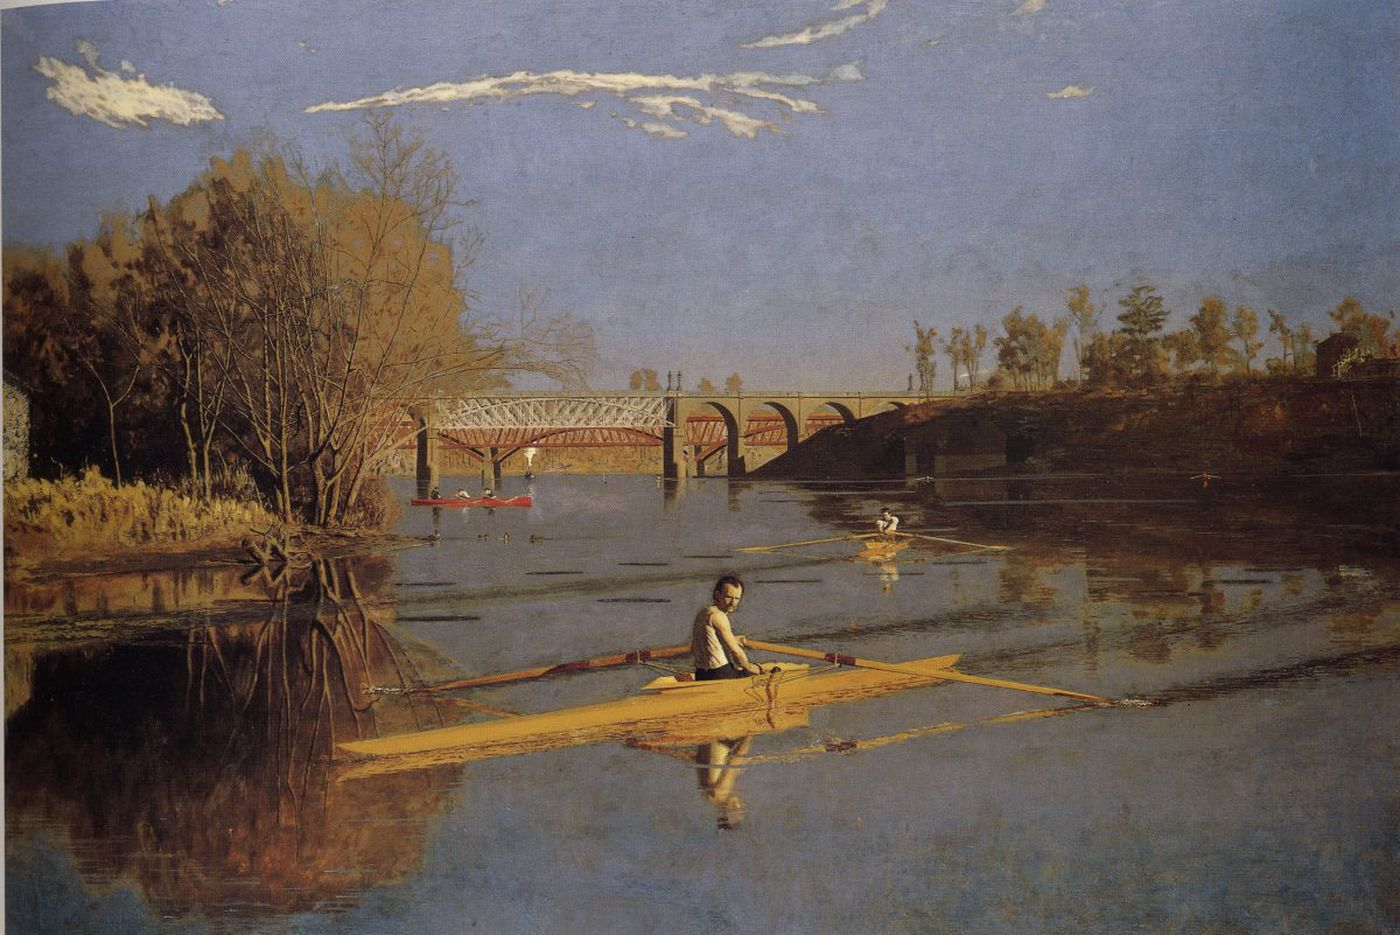 Thomas Eakins' love of the Schuylkill and all things rowing | Perspective